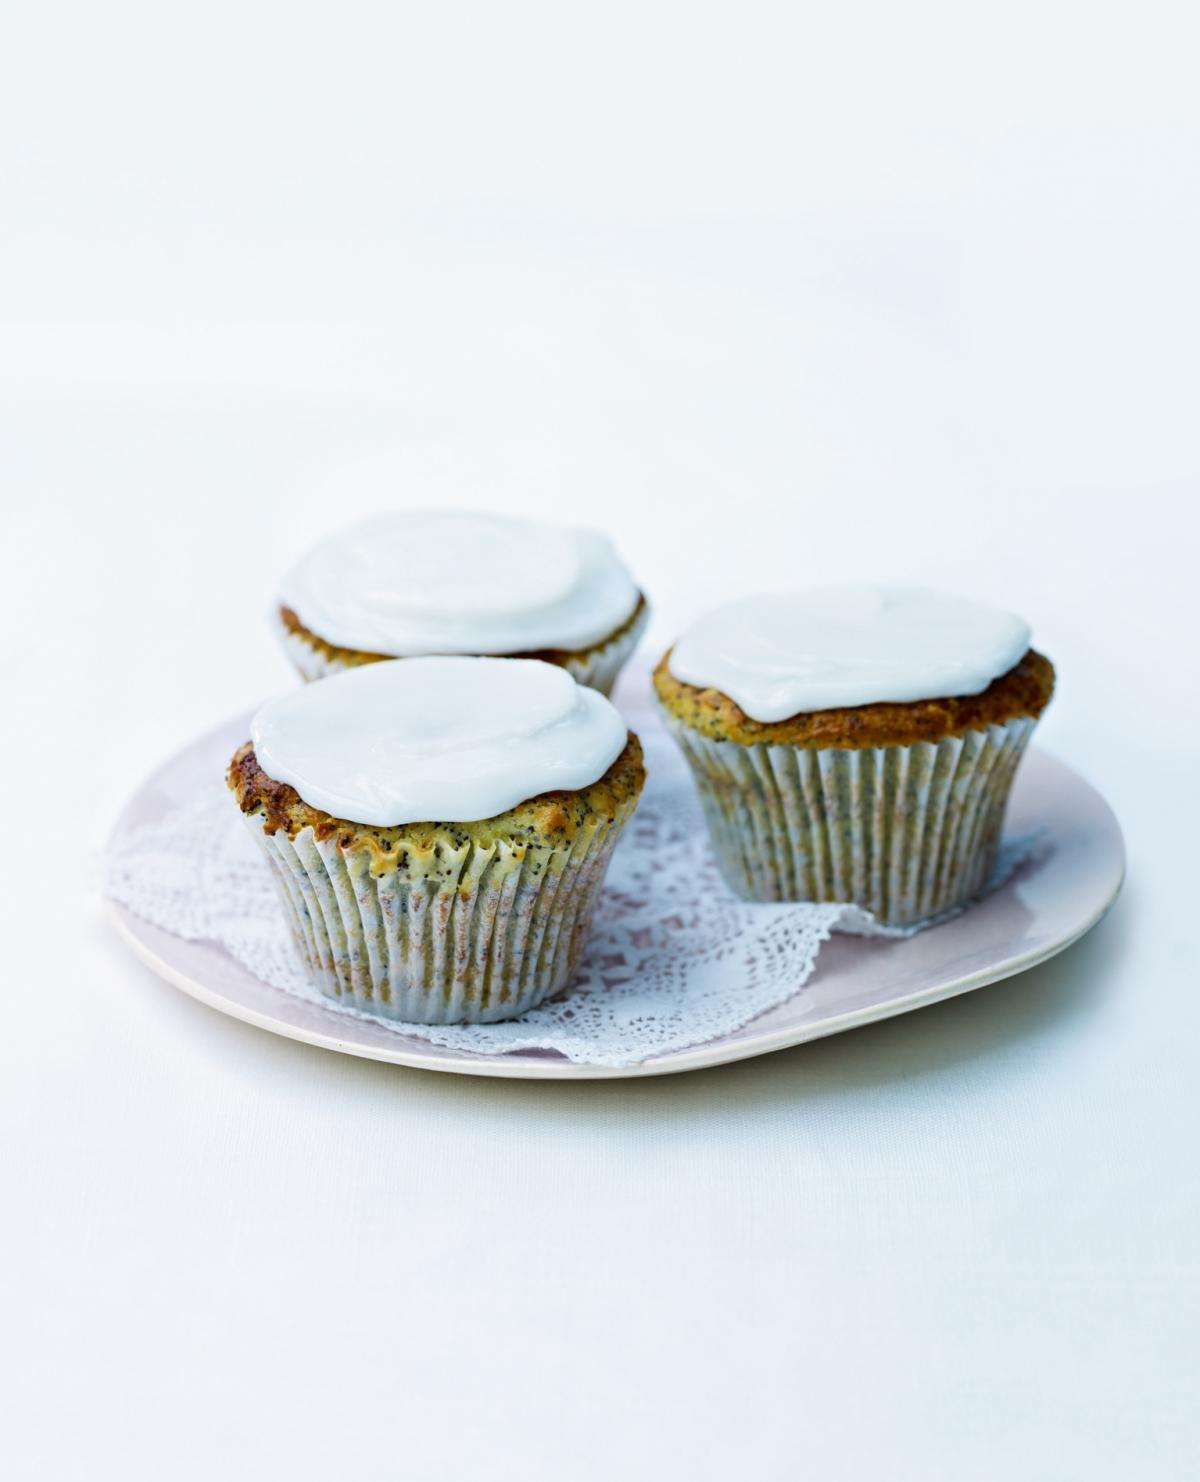 A picture of Delia's Muffin Recipes recipes